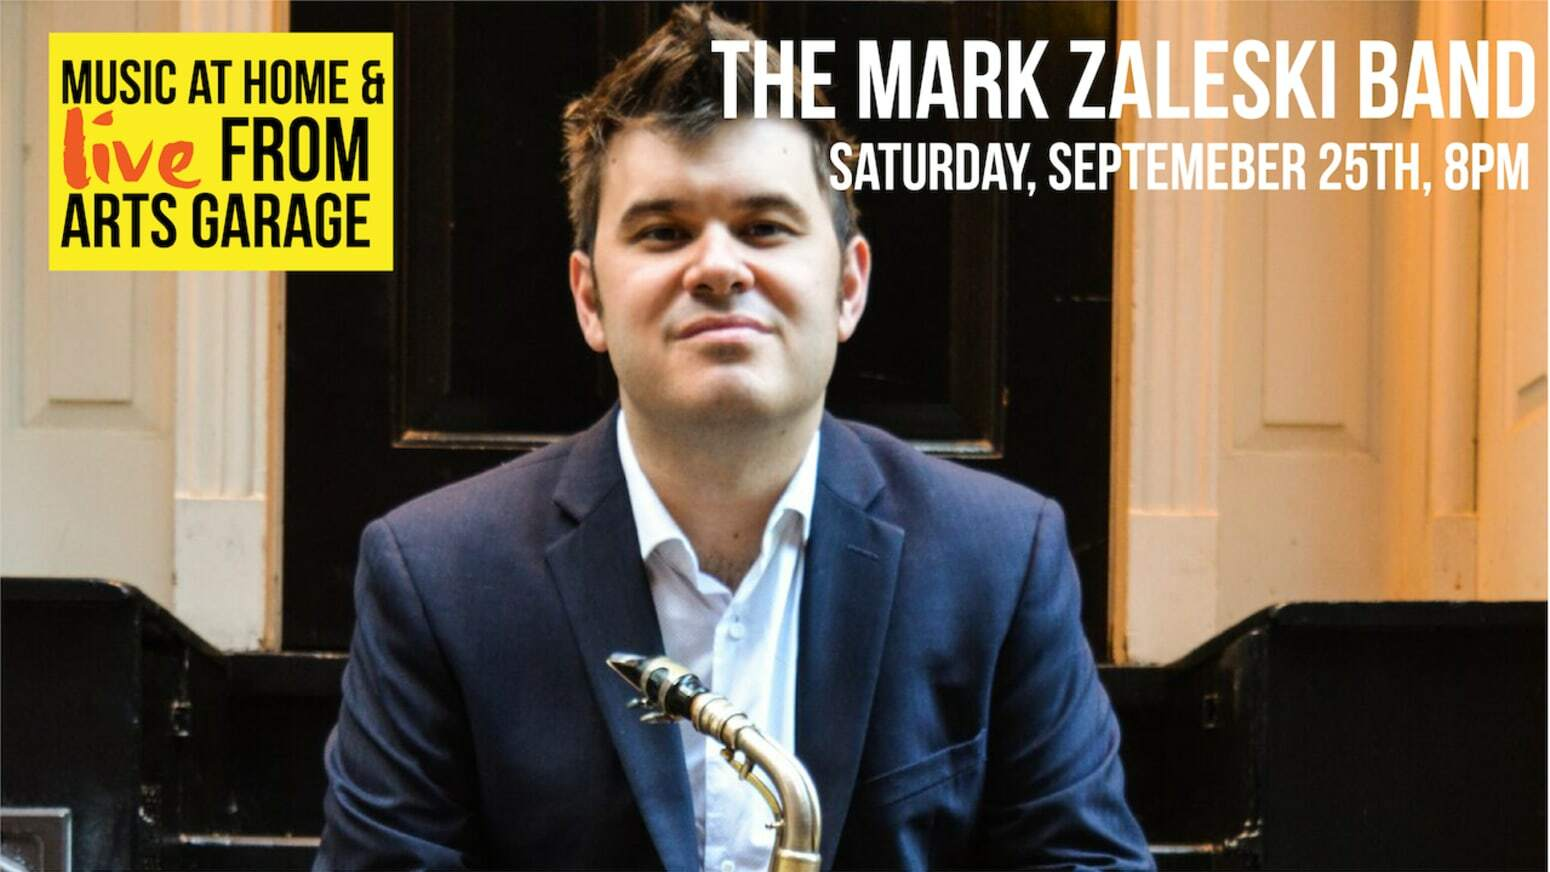 The Mark Zaleski Band - Online